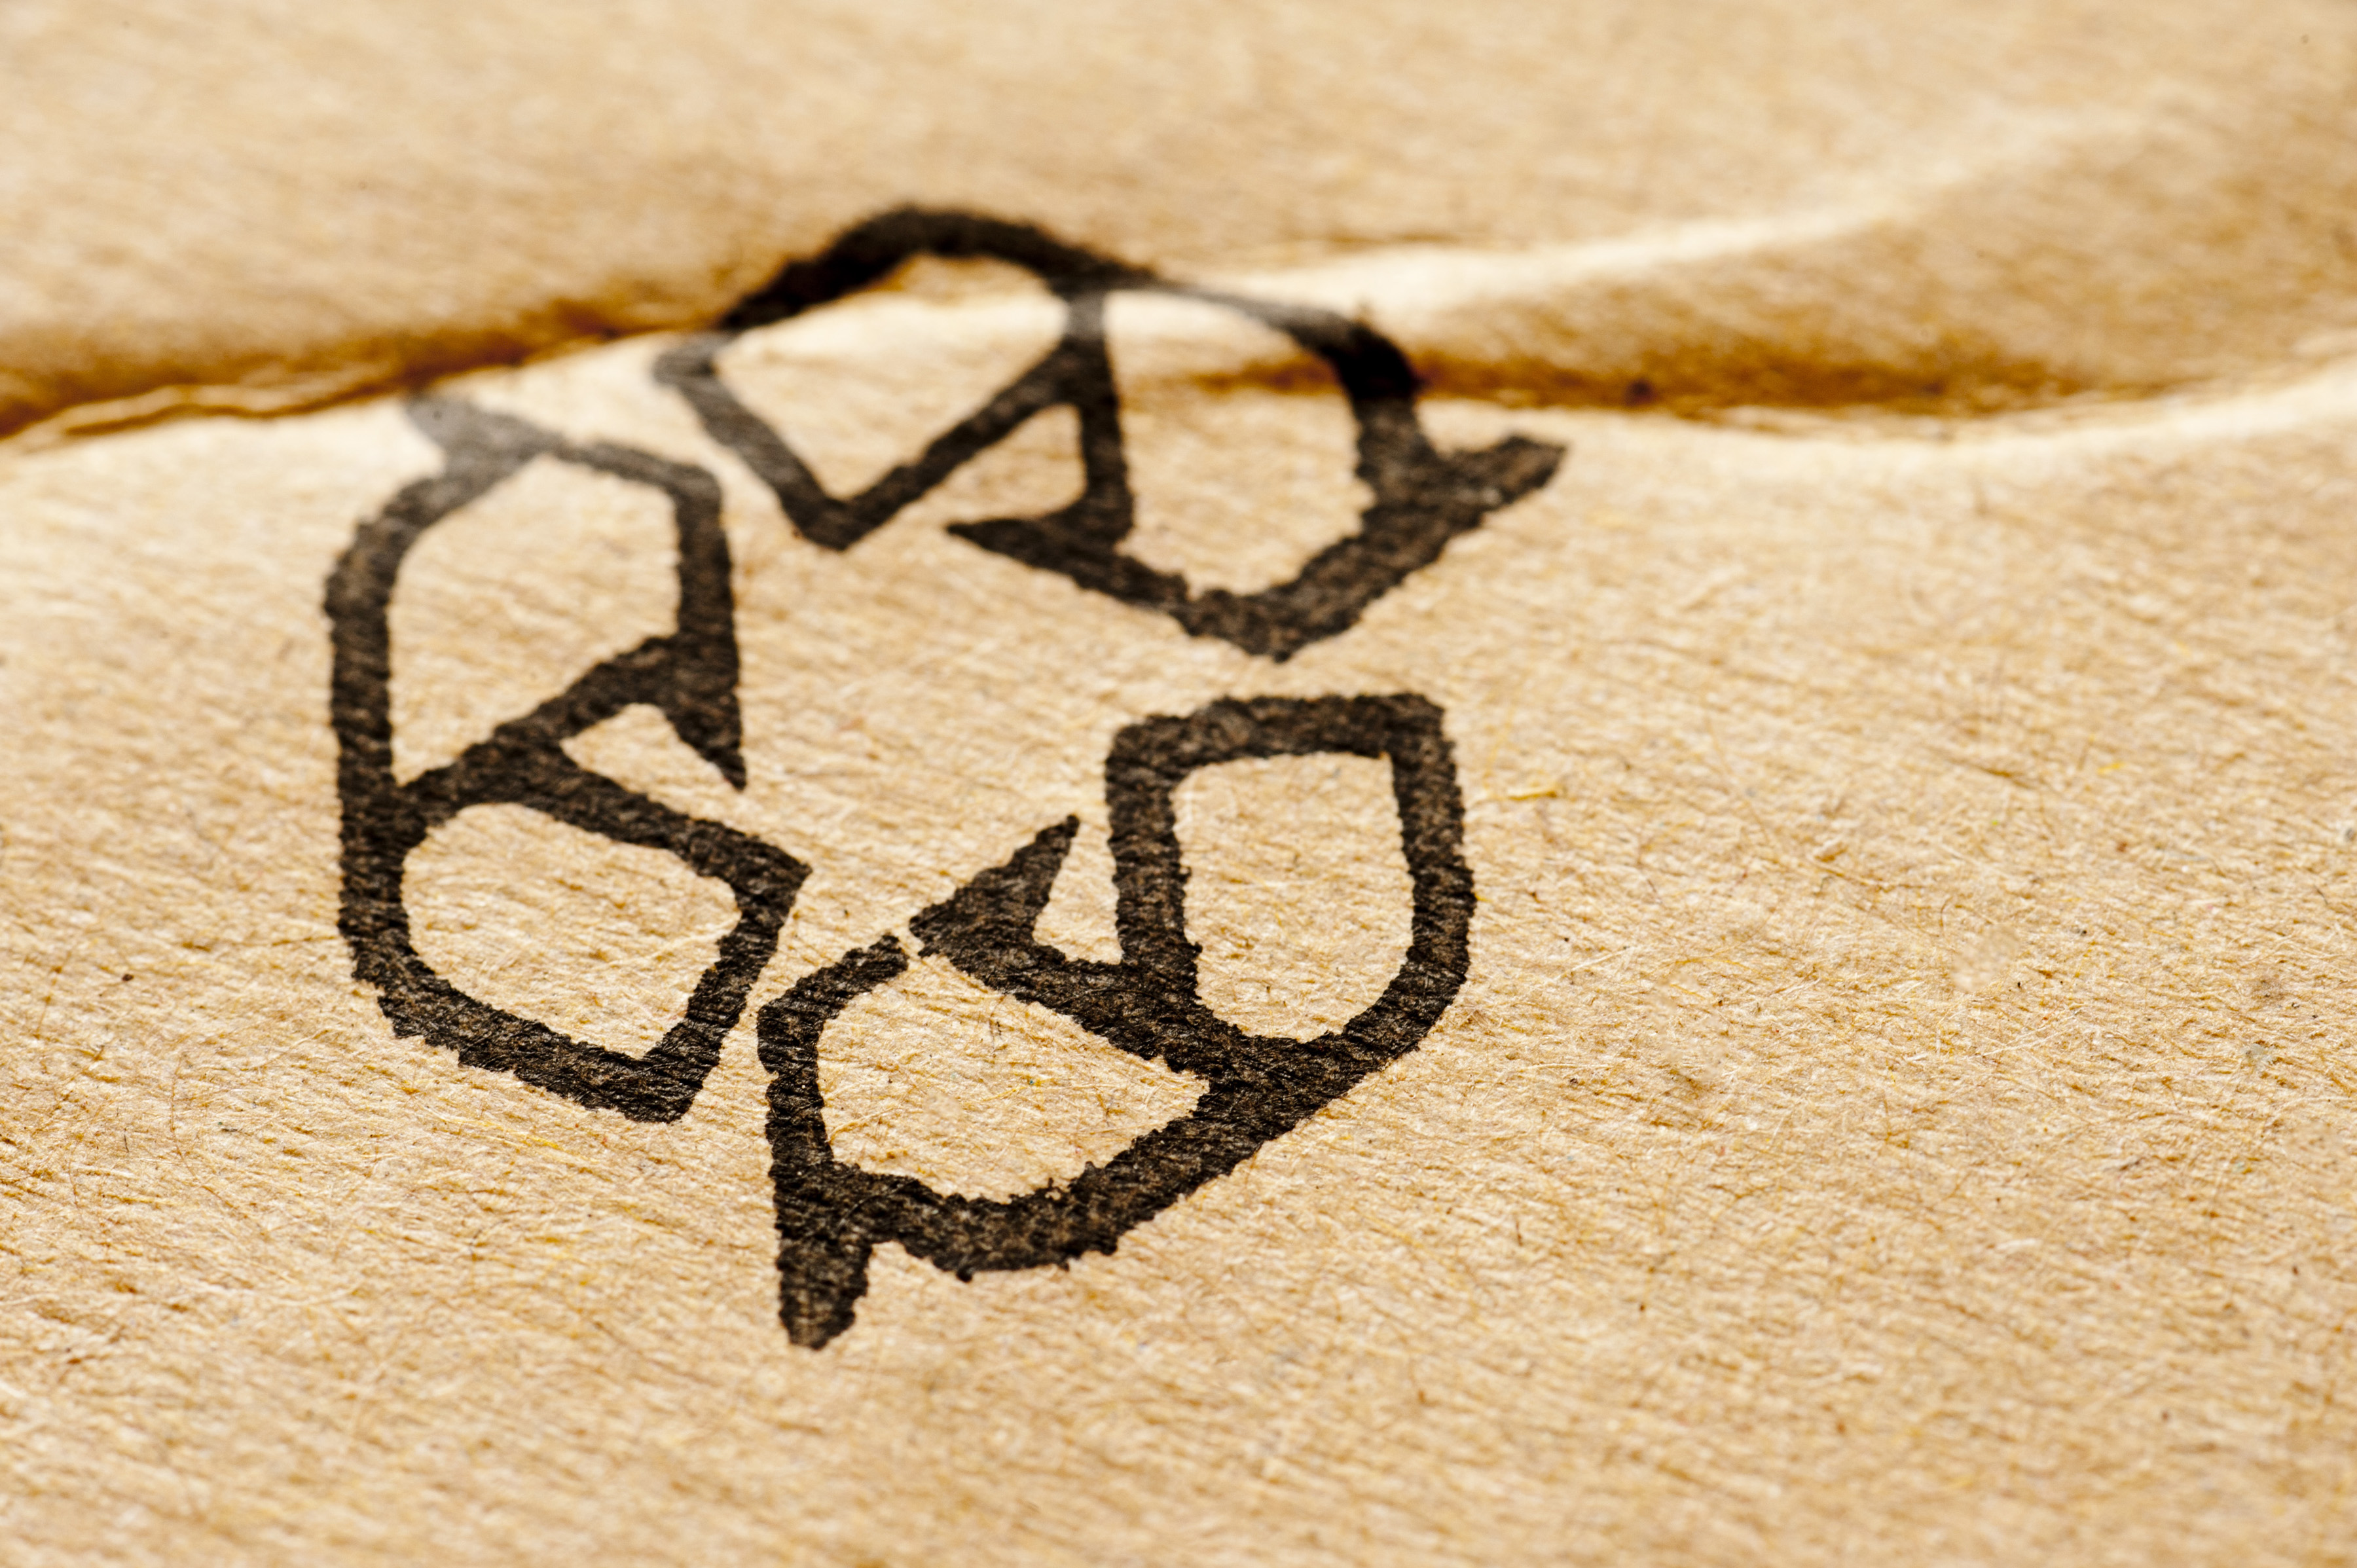 Recycle symbol on a cardboard background texture on commercial packaging with copy space alongside